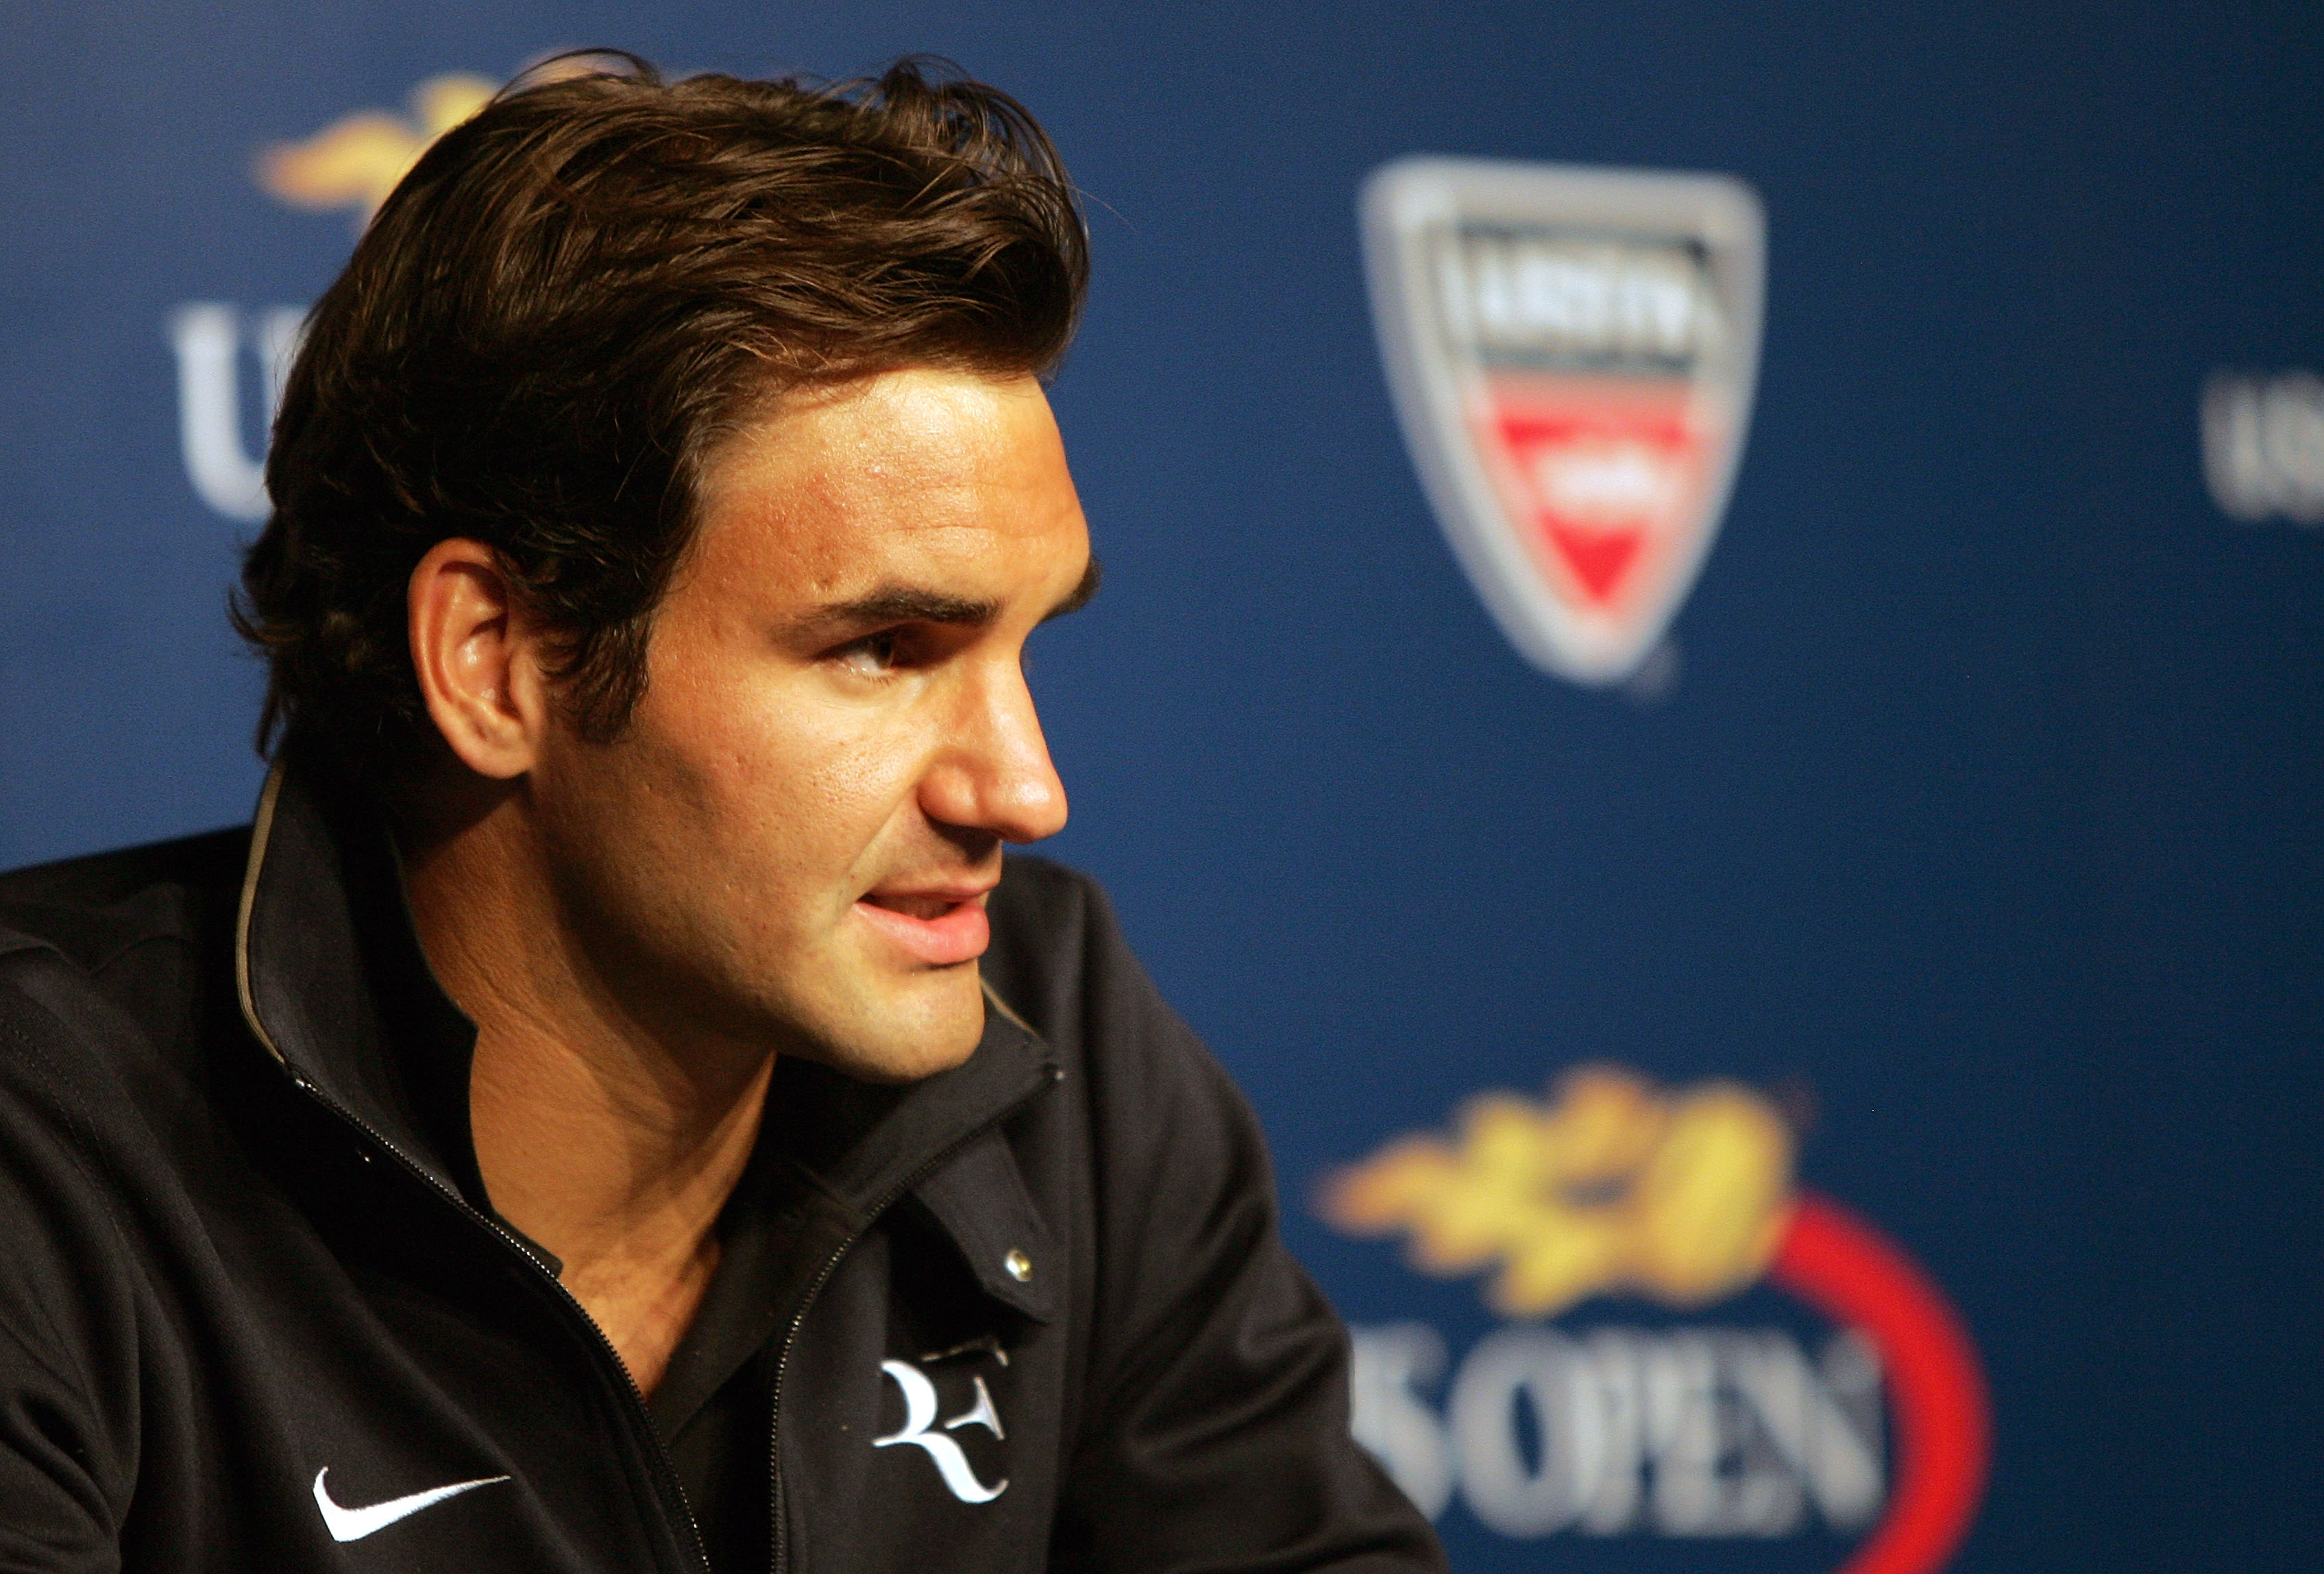 NEW YORK - AUGUST 28:  Roger Federer of Switzerland talks to the media during a press conference held on Arthur Ashe Kids' Day prior to the start of the 2010 U.S. Open at the USTA Billie Jean King National Tennis Center on August 28, 2010 in the Flushing